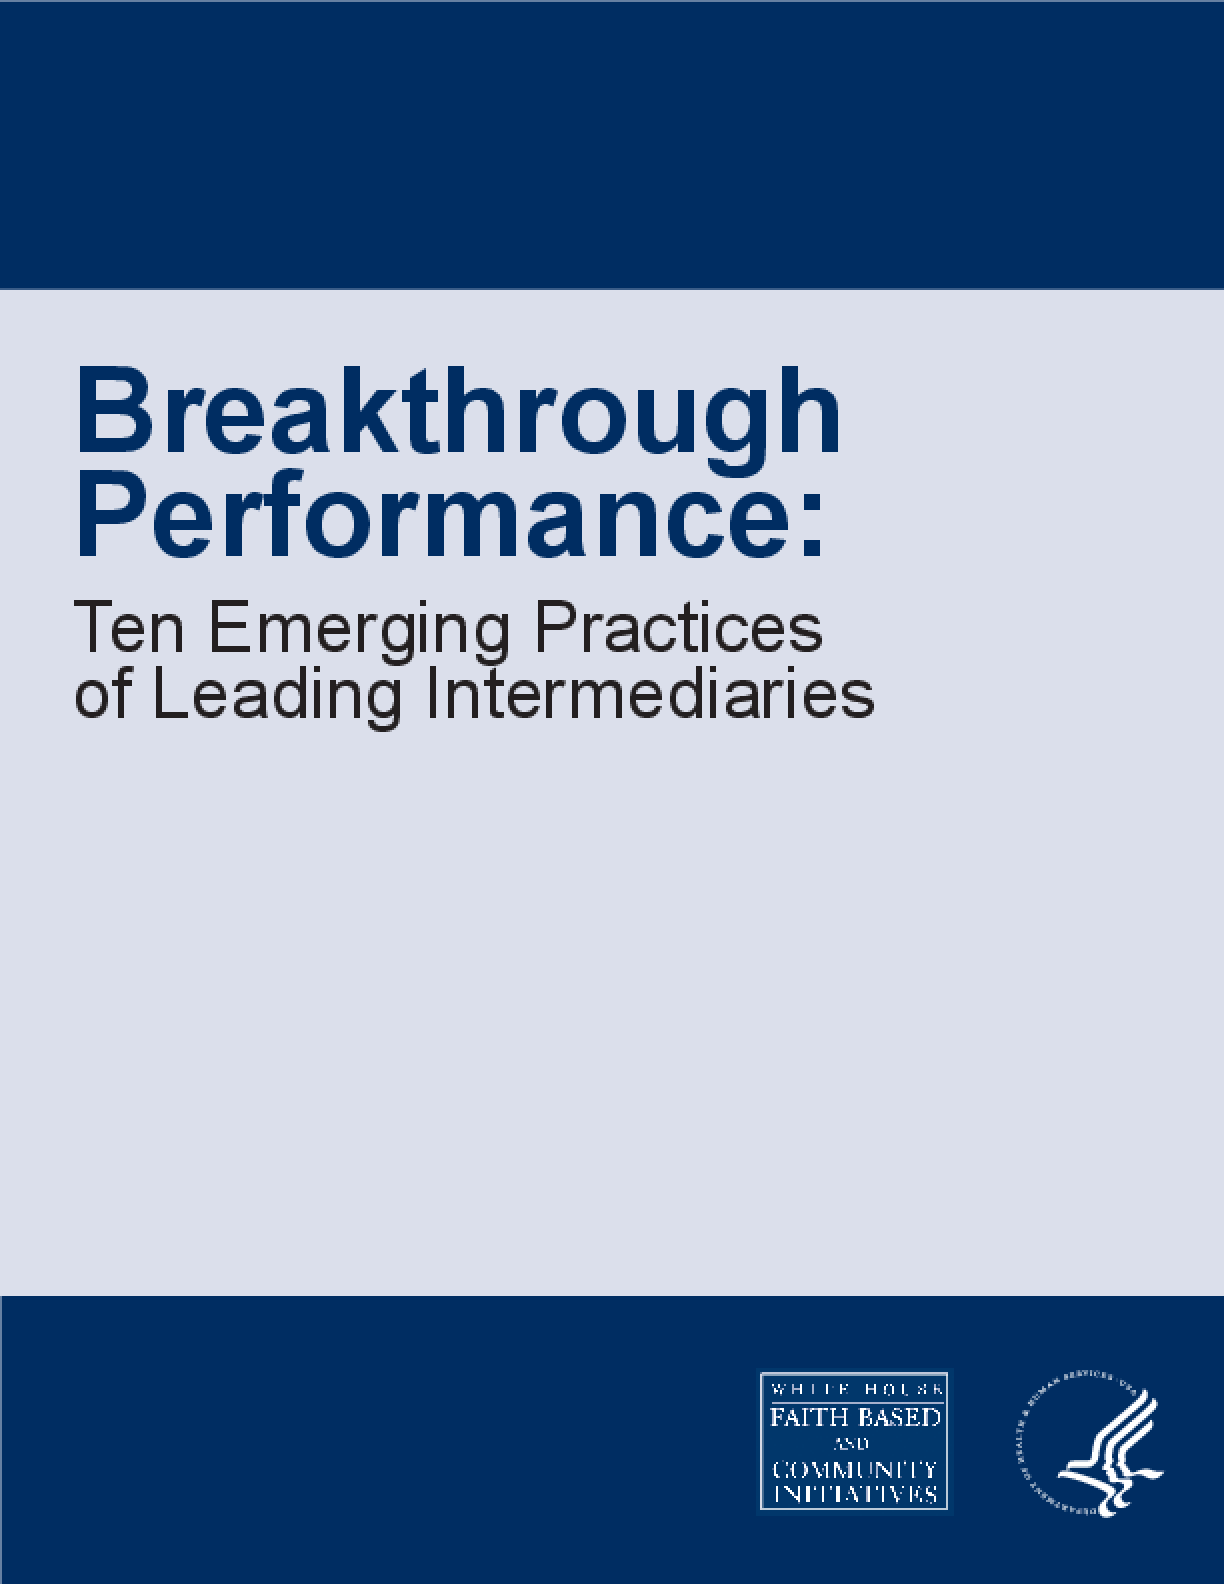 Breakthrough Performance: Ten Emerging Practices of Leading Intermediaries